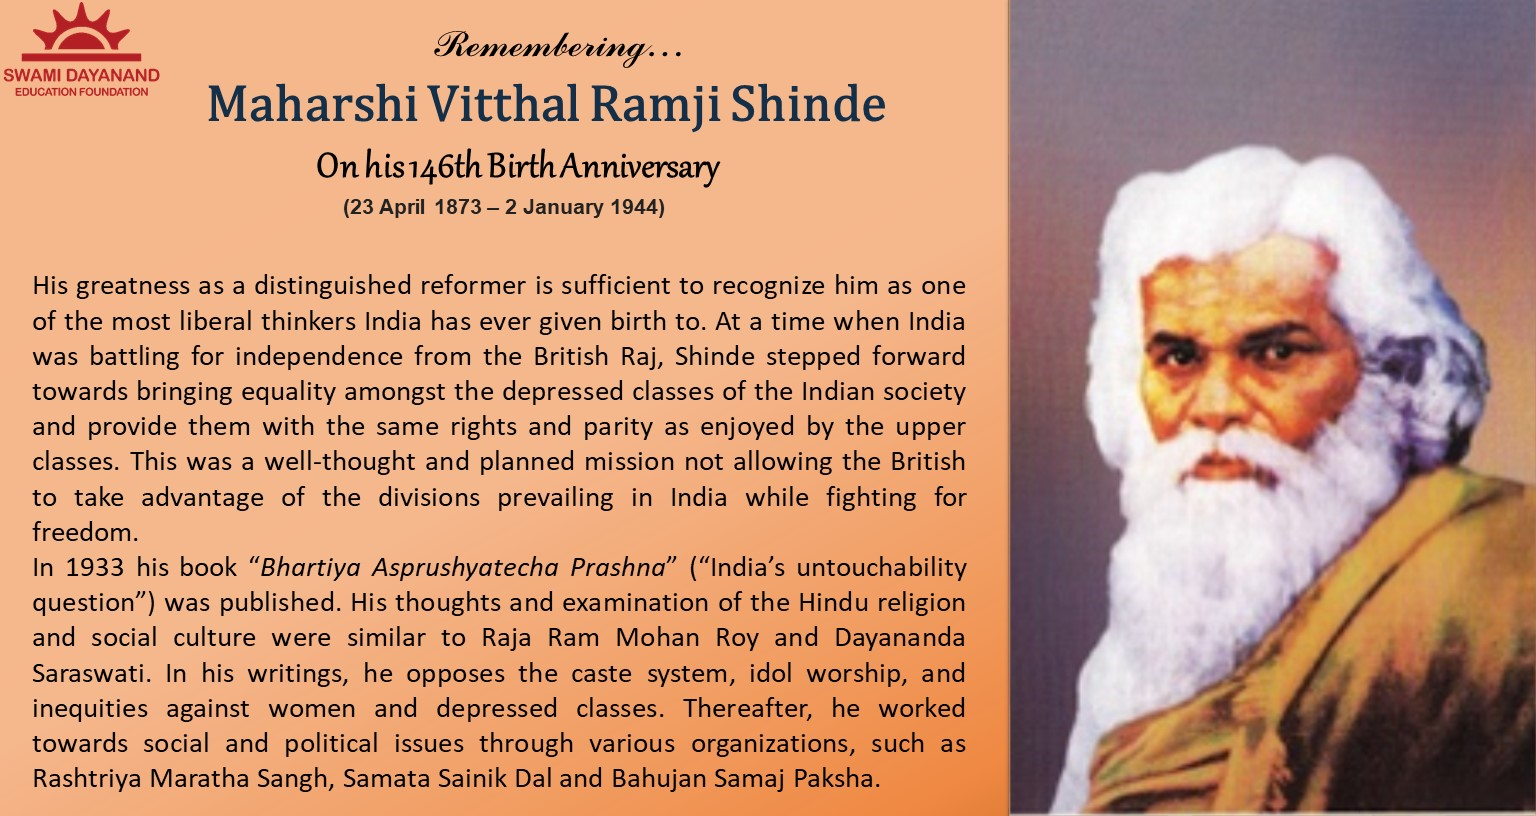 MAHARSHI VITTHAL RAMJI SHINDE  (23rd Apr 1873 - 2nd Jan 1944)